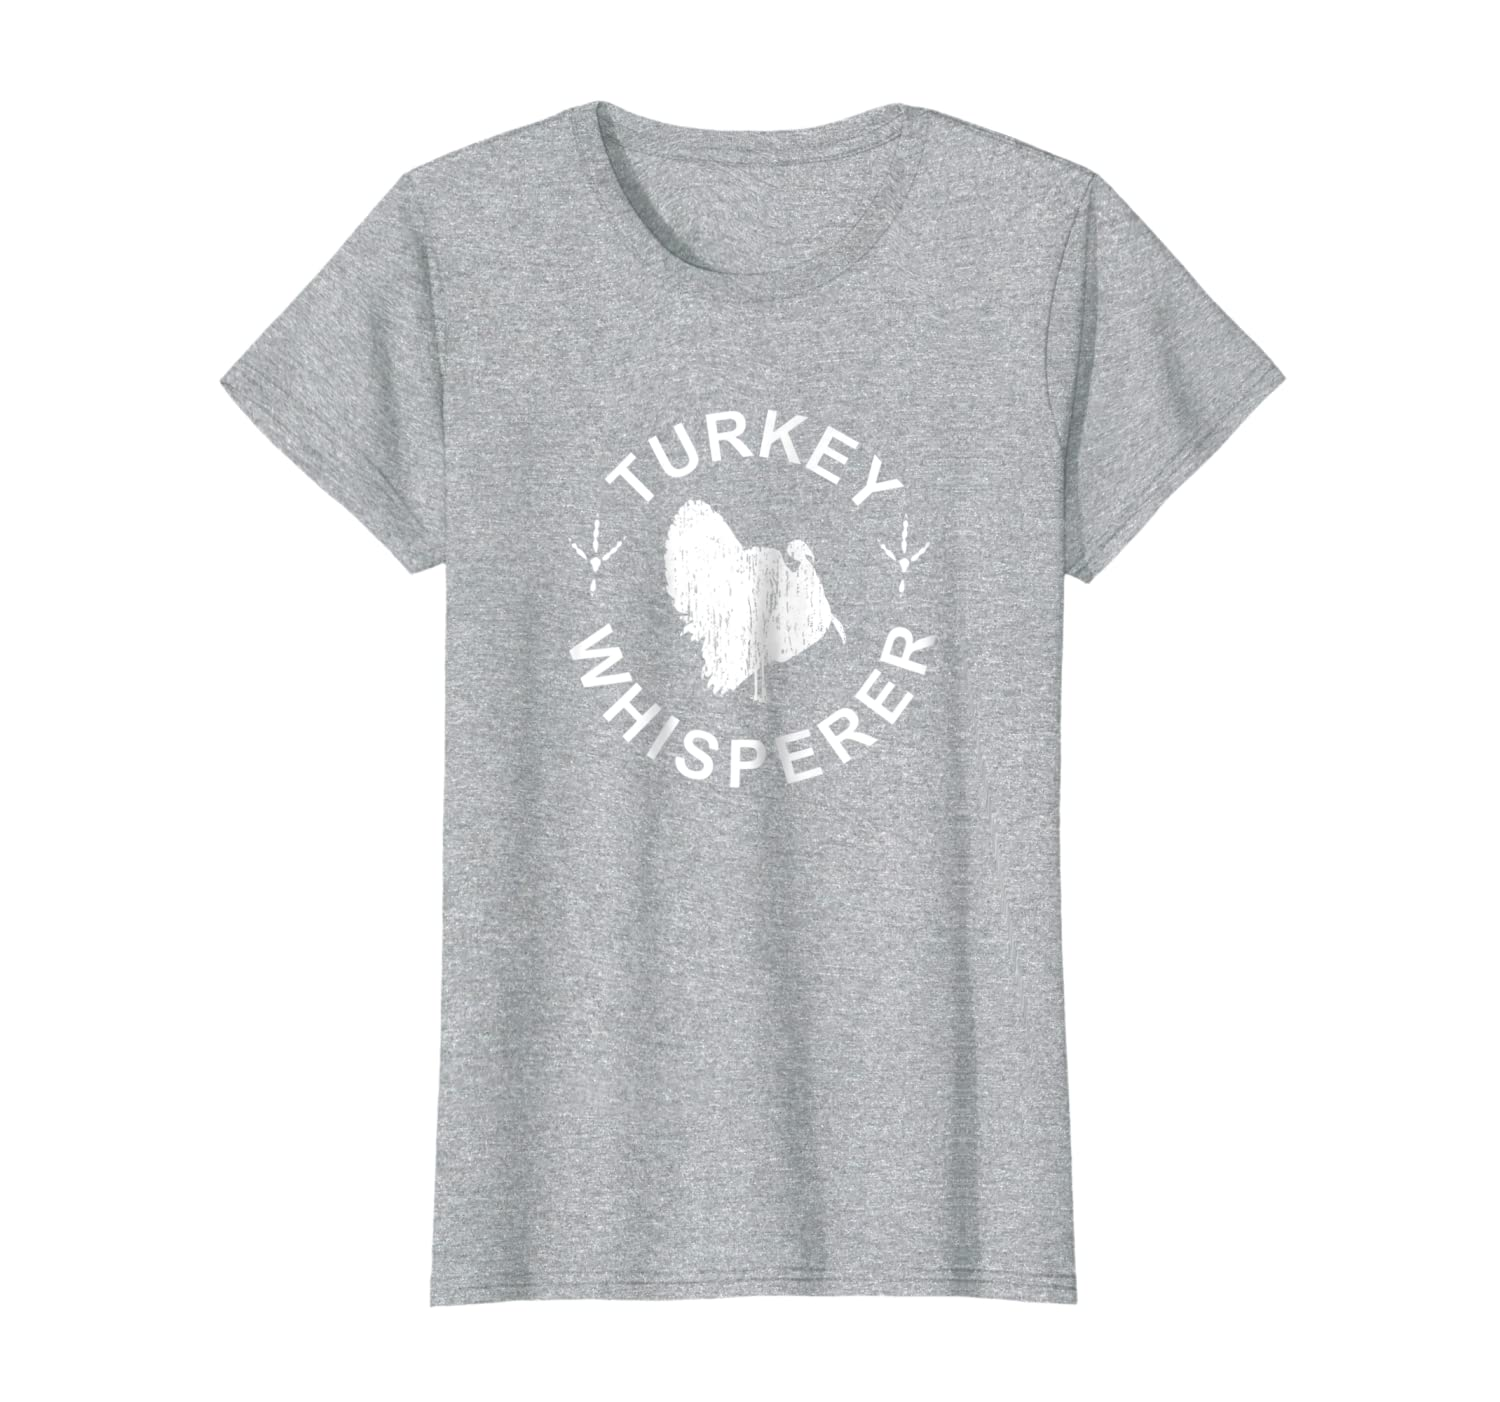 Strutting Turkey Hunting Shirt with a Vintage Look Unisex Tshirt